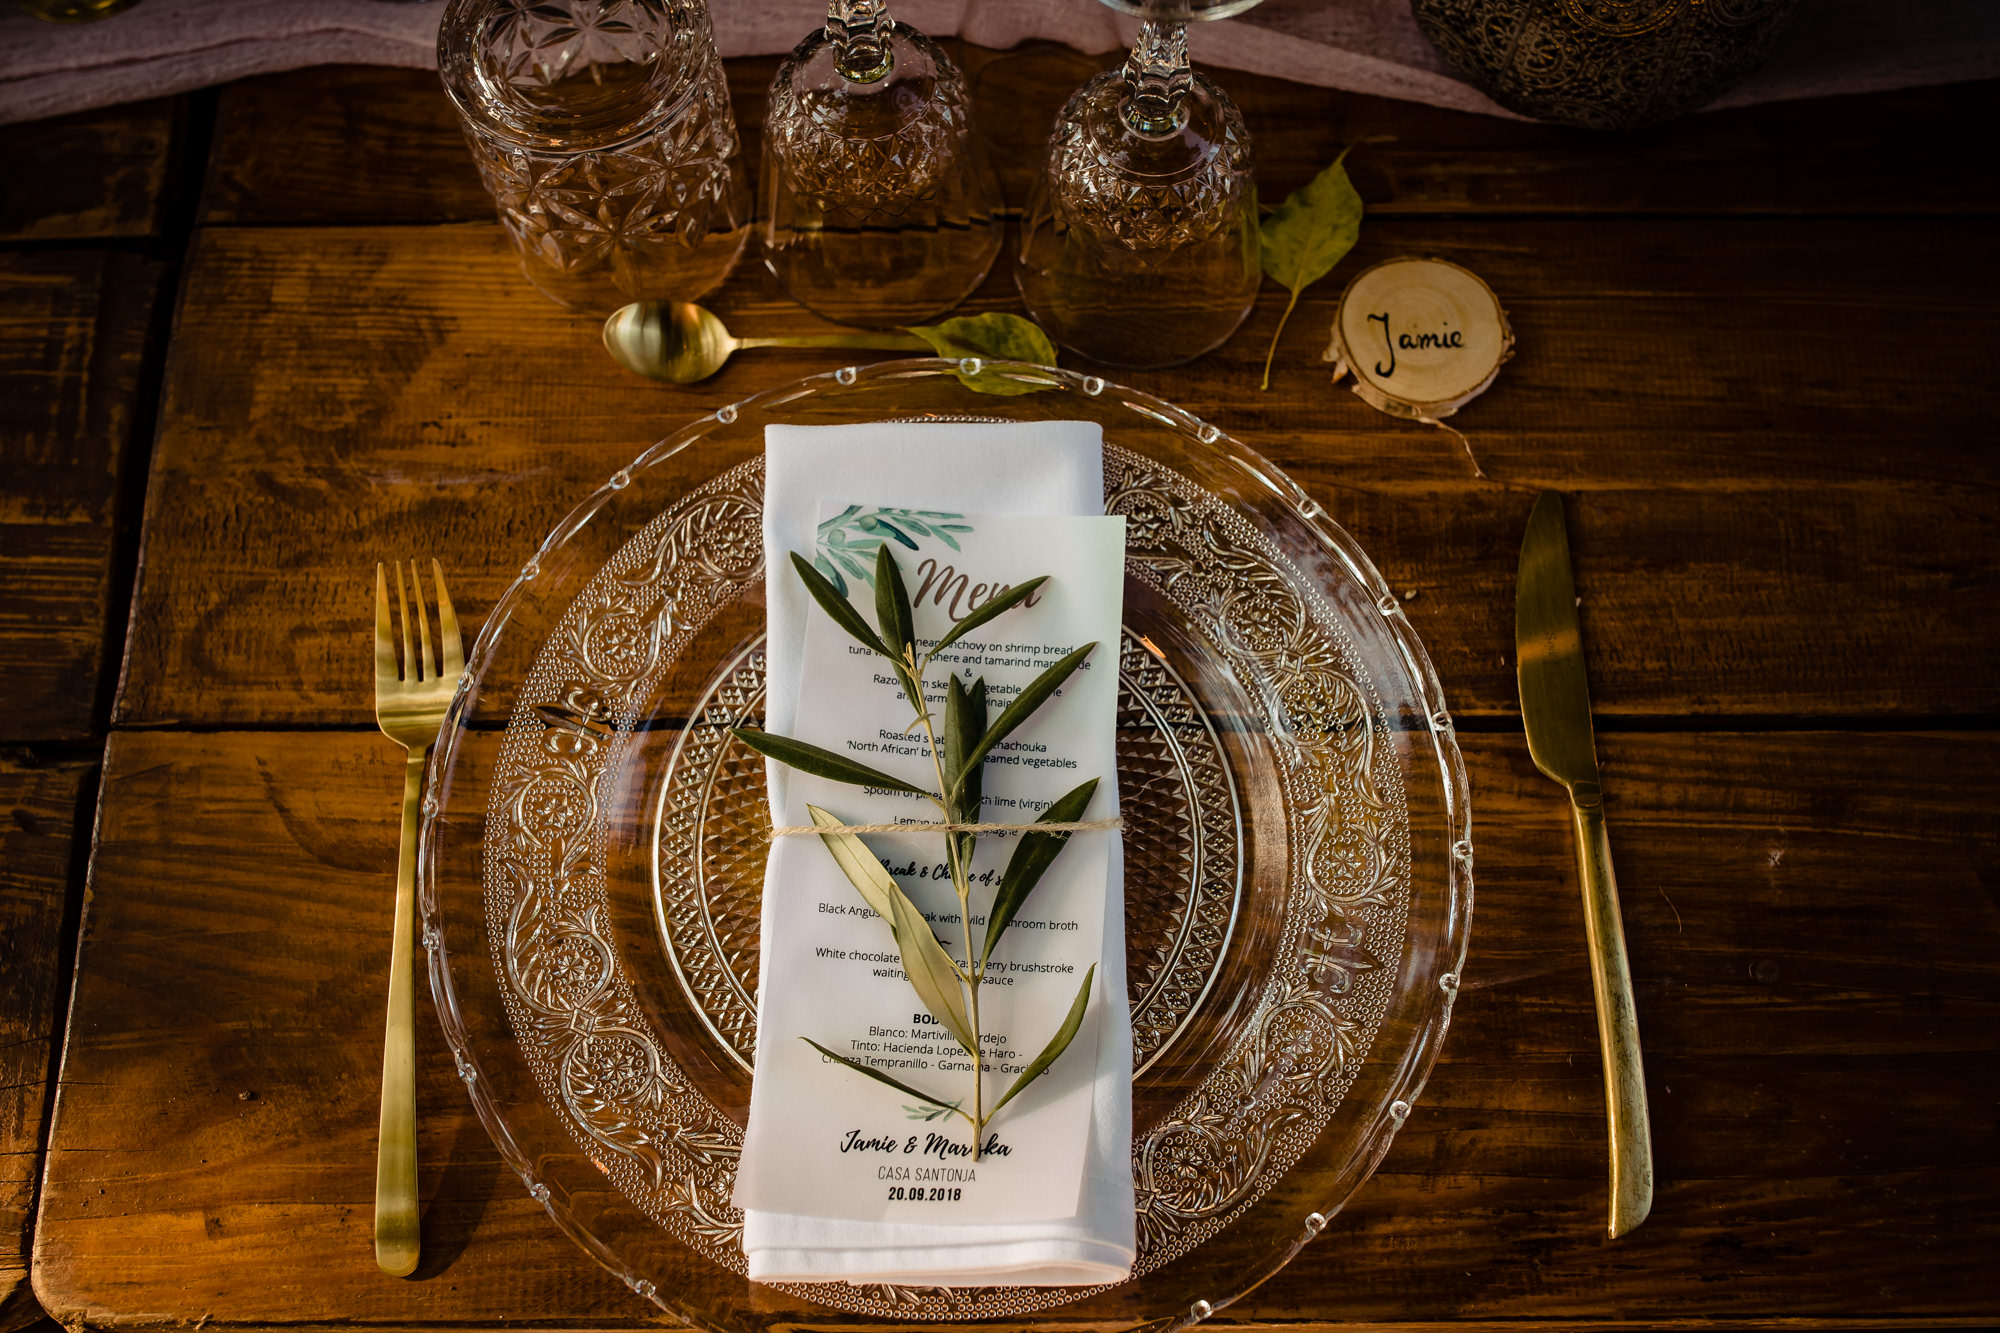 Glass charger, gold flatware, menu with bay leaves - photo by Eppel Photography